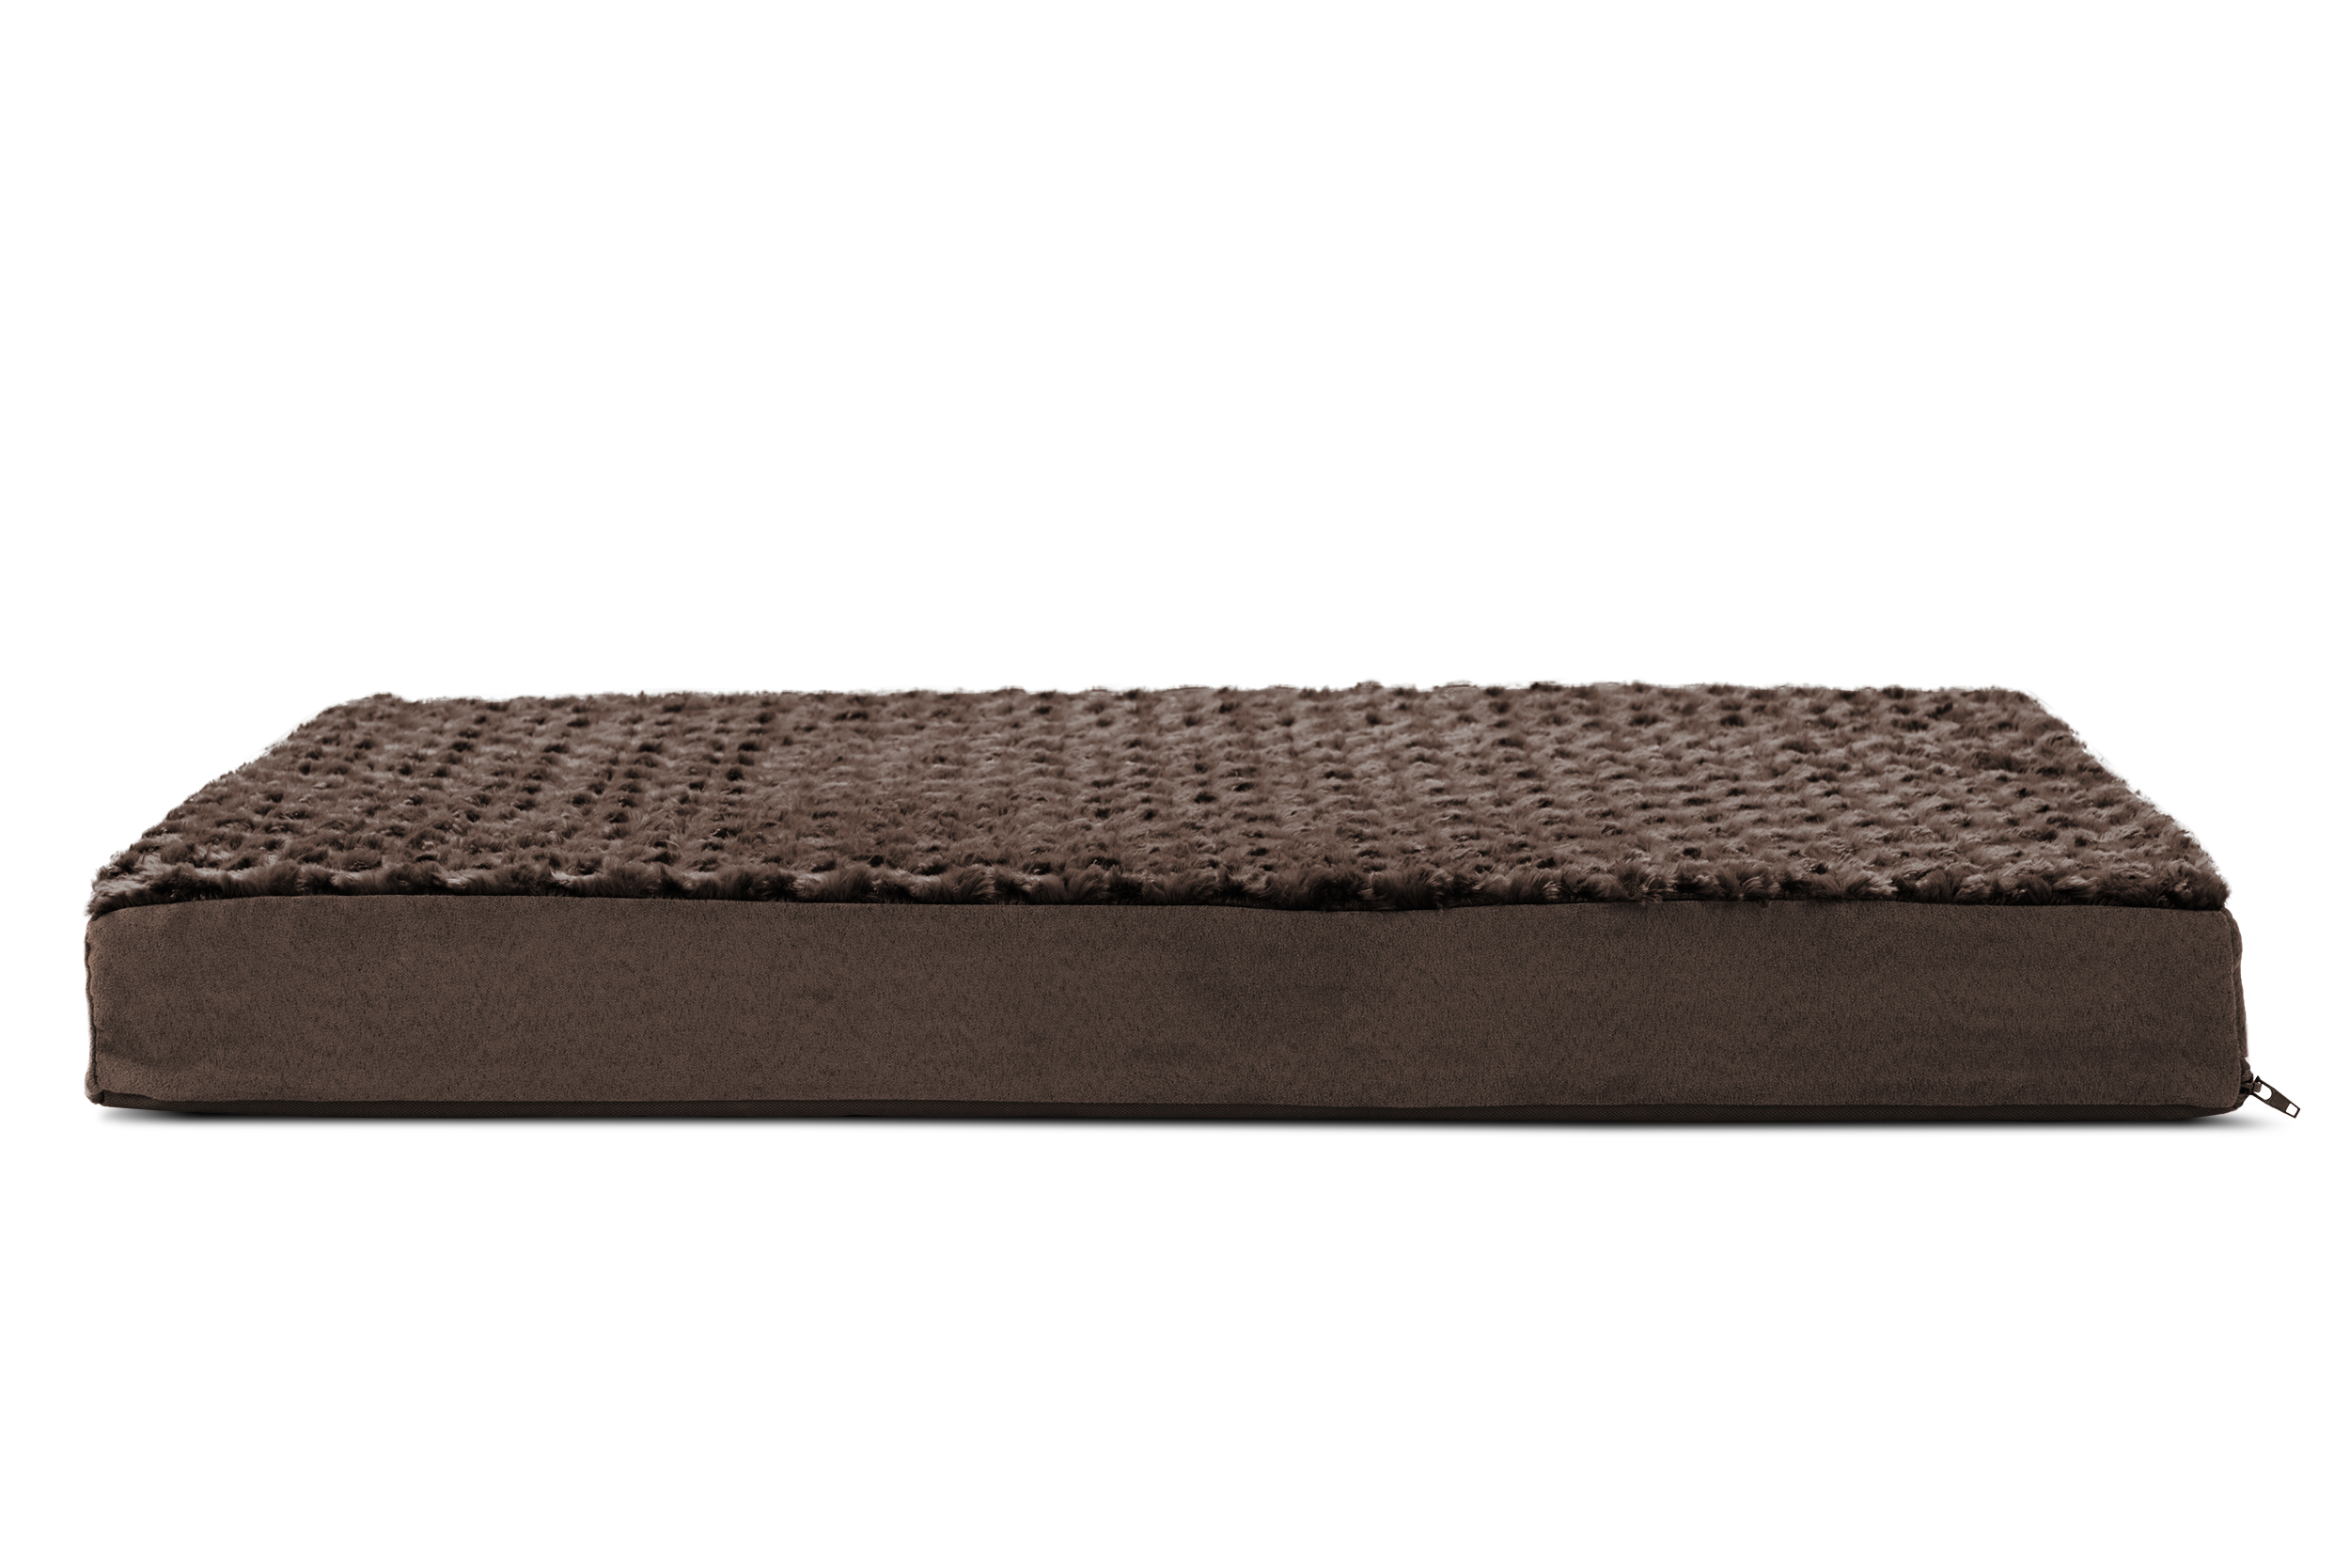 FurHaven Orthopedic Mattress Pet Bed Dogs and Cats Chocolate